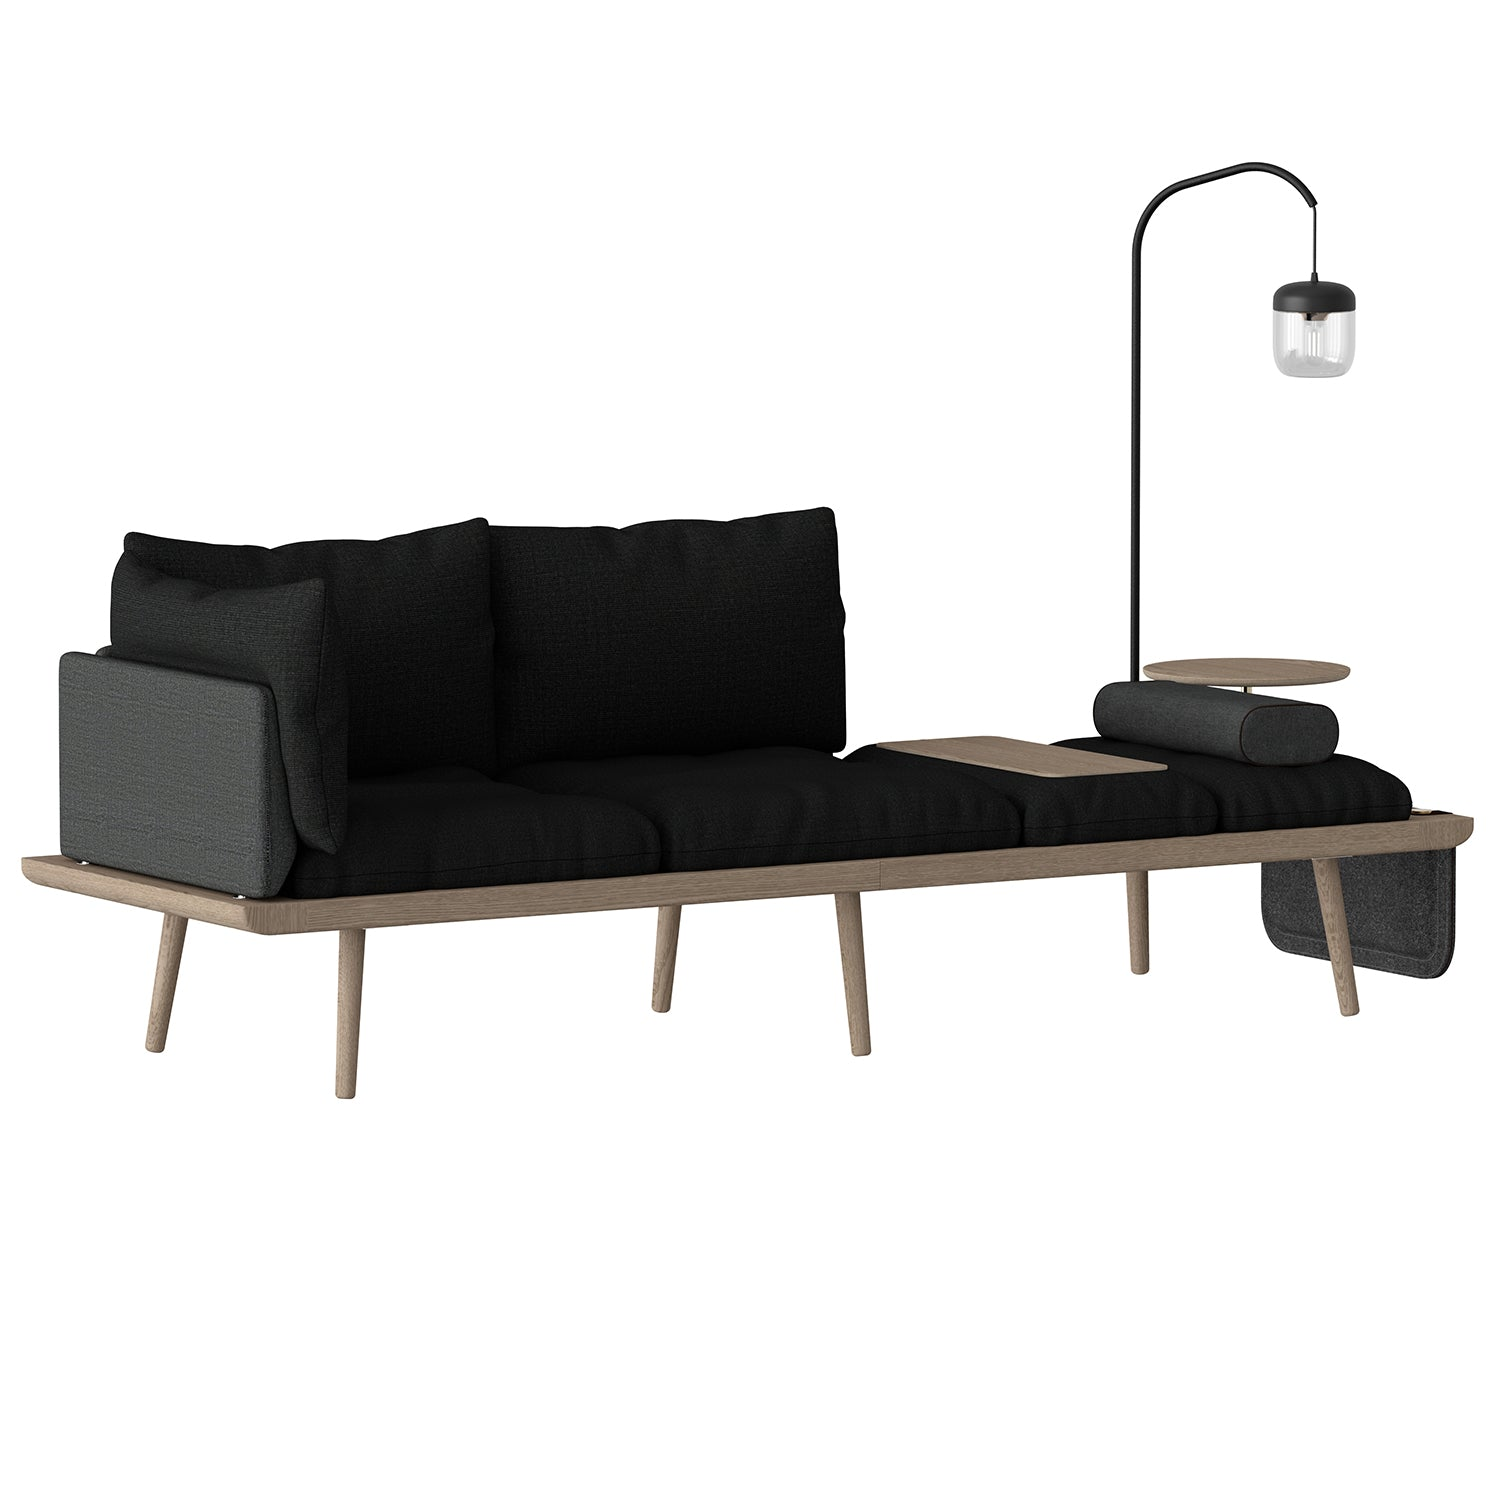 Lounge Around 3 Seater Accessories